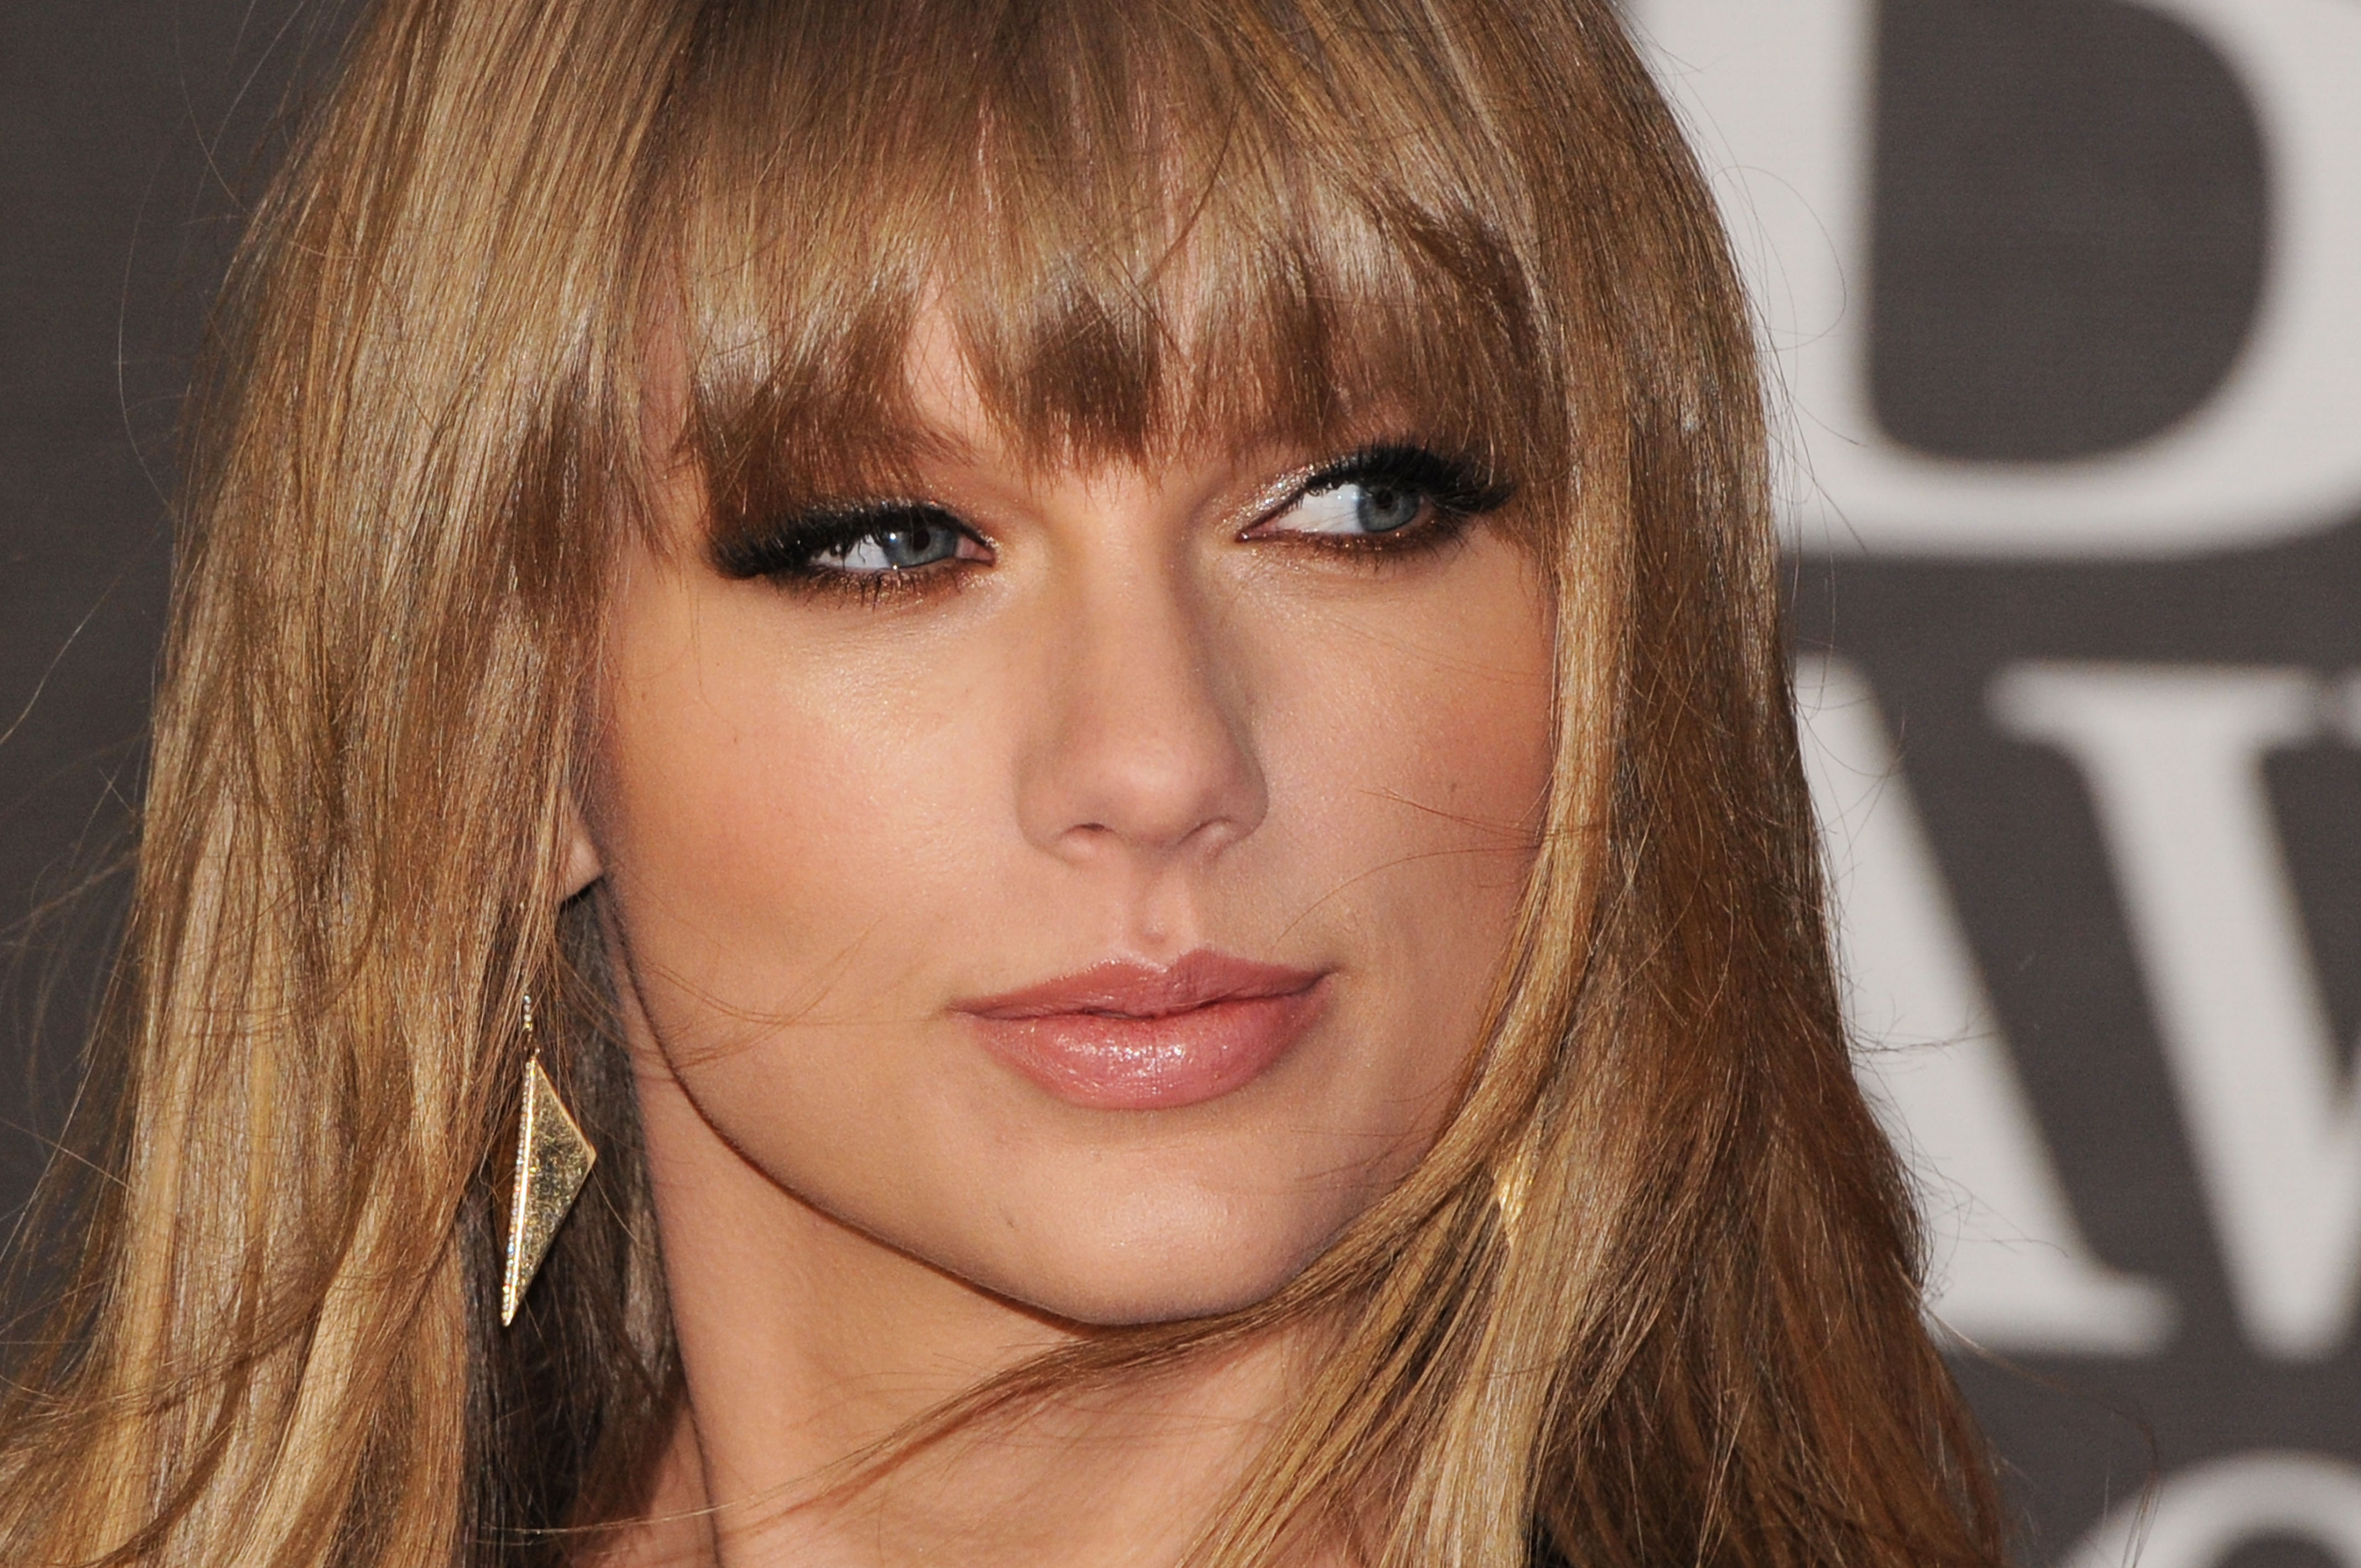 Taylor Swift is using rope as a belt for her dress, and we are copying this look pronto